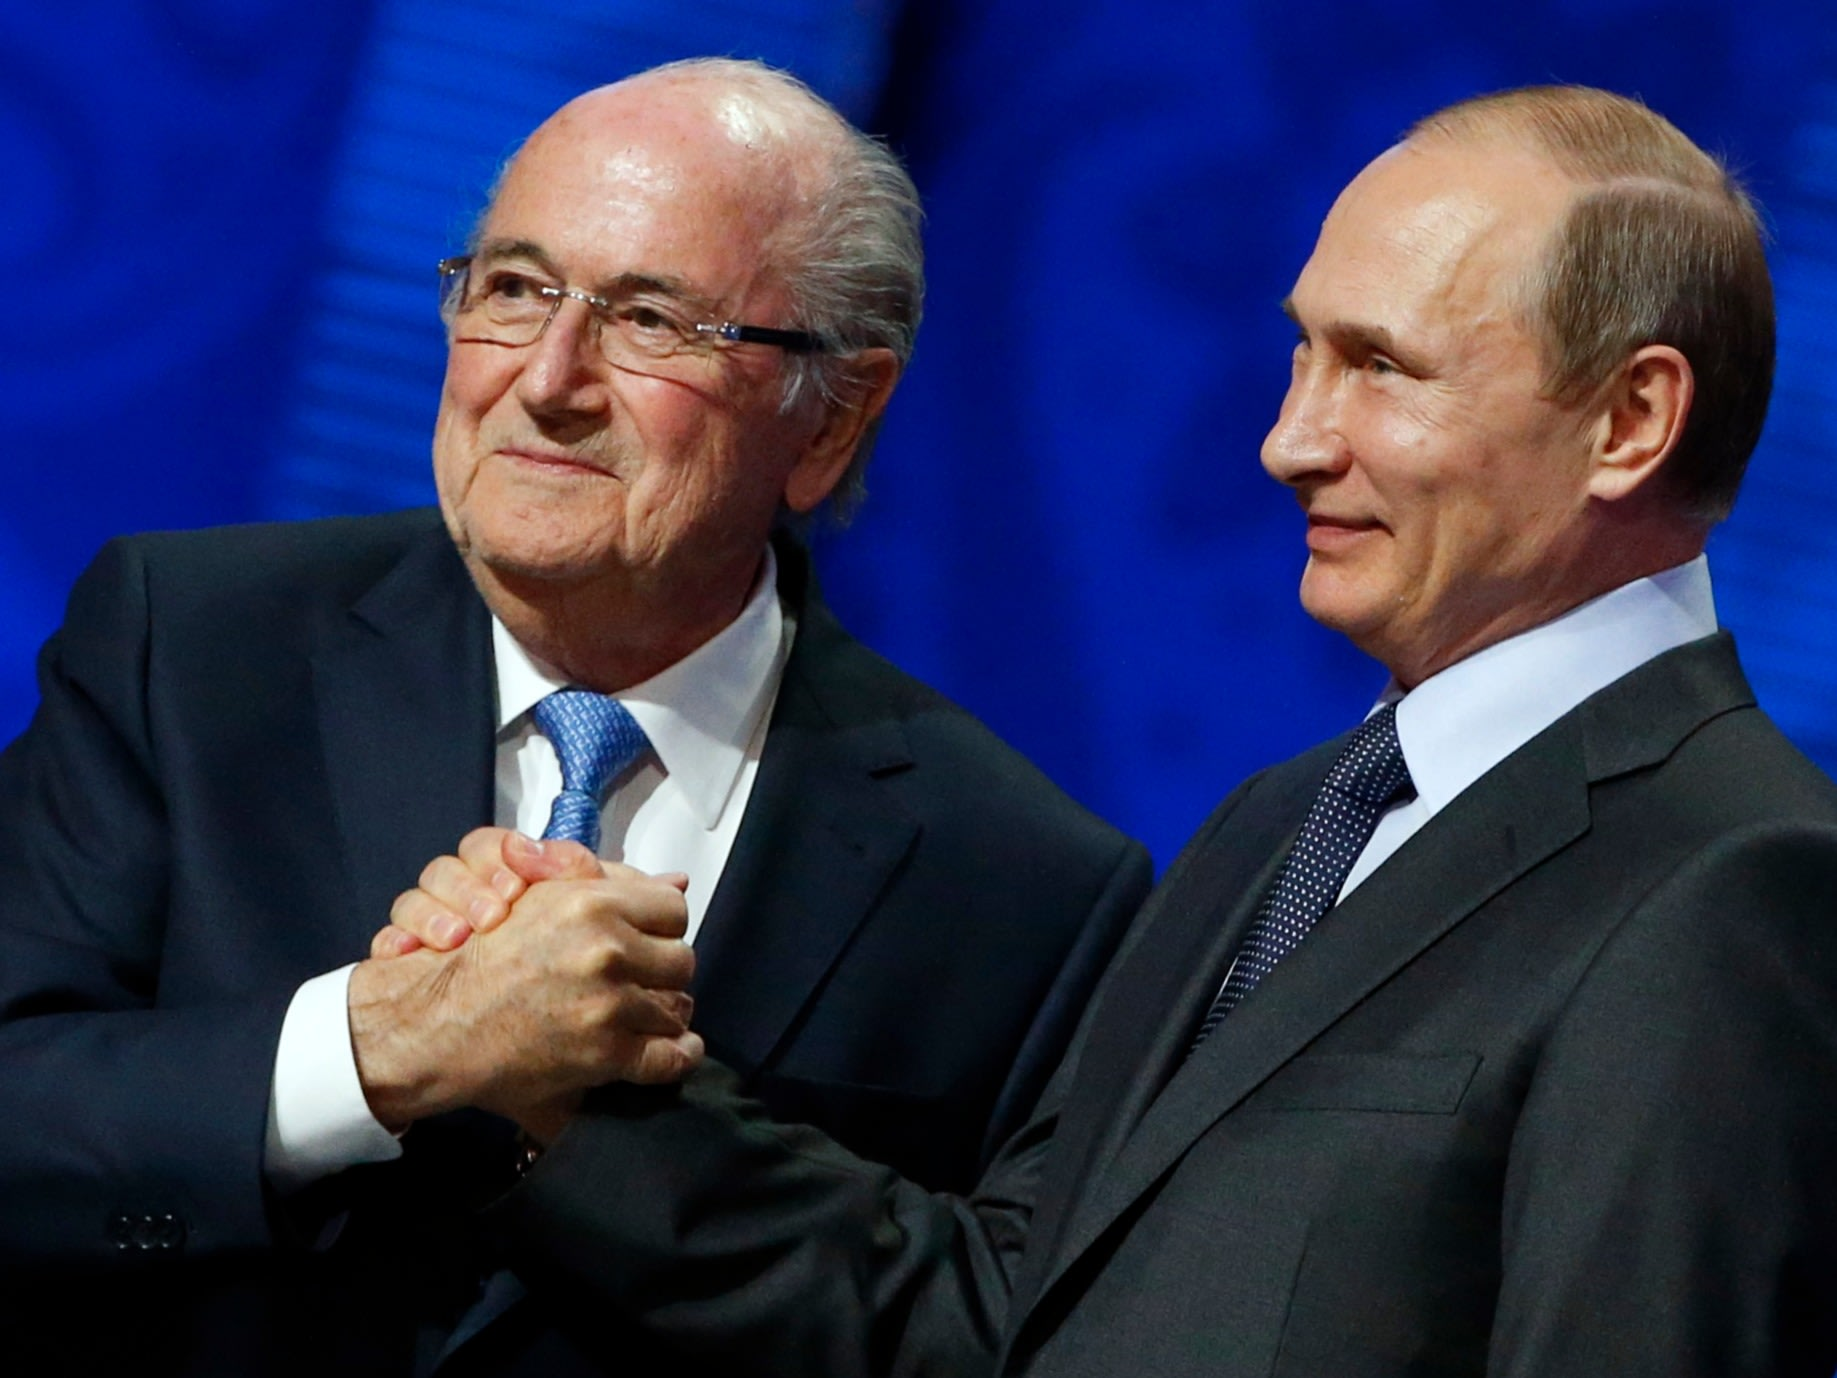 Putin's support for embattled FIFA president Sepp Blatter says something striking about how he views the world